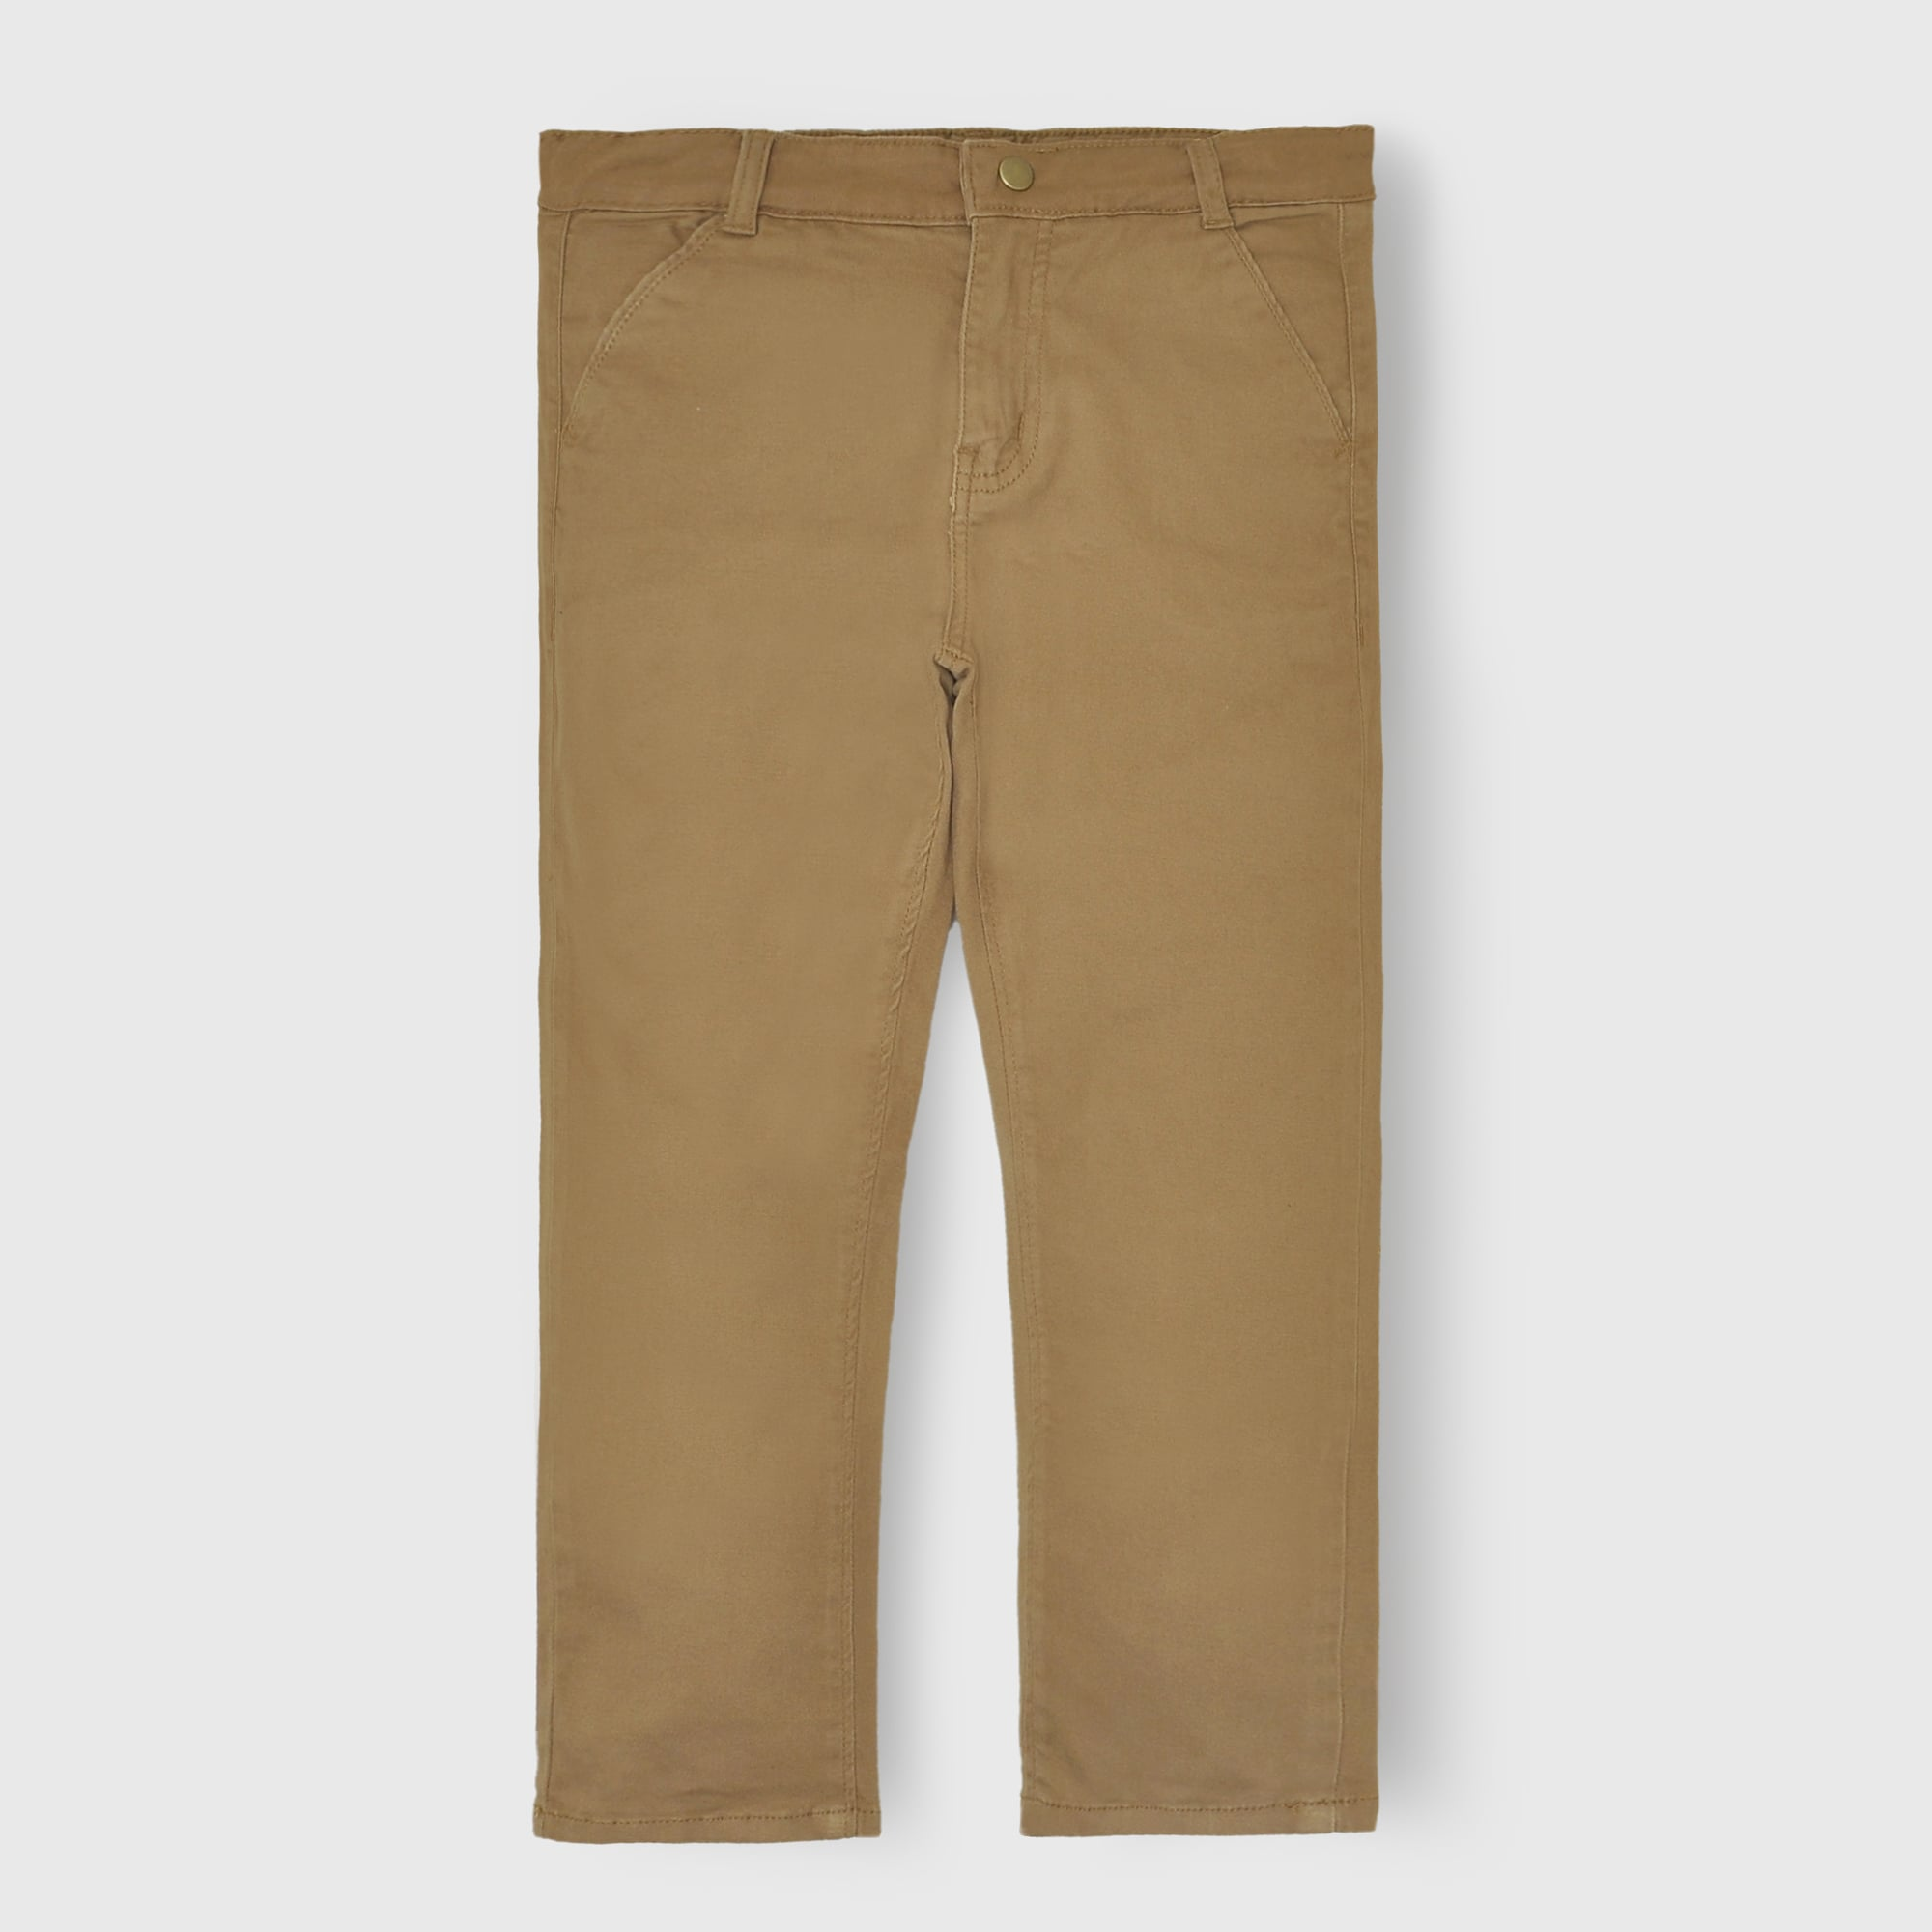 Mud Brown Pants